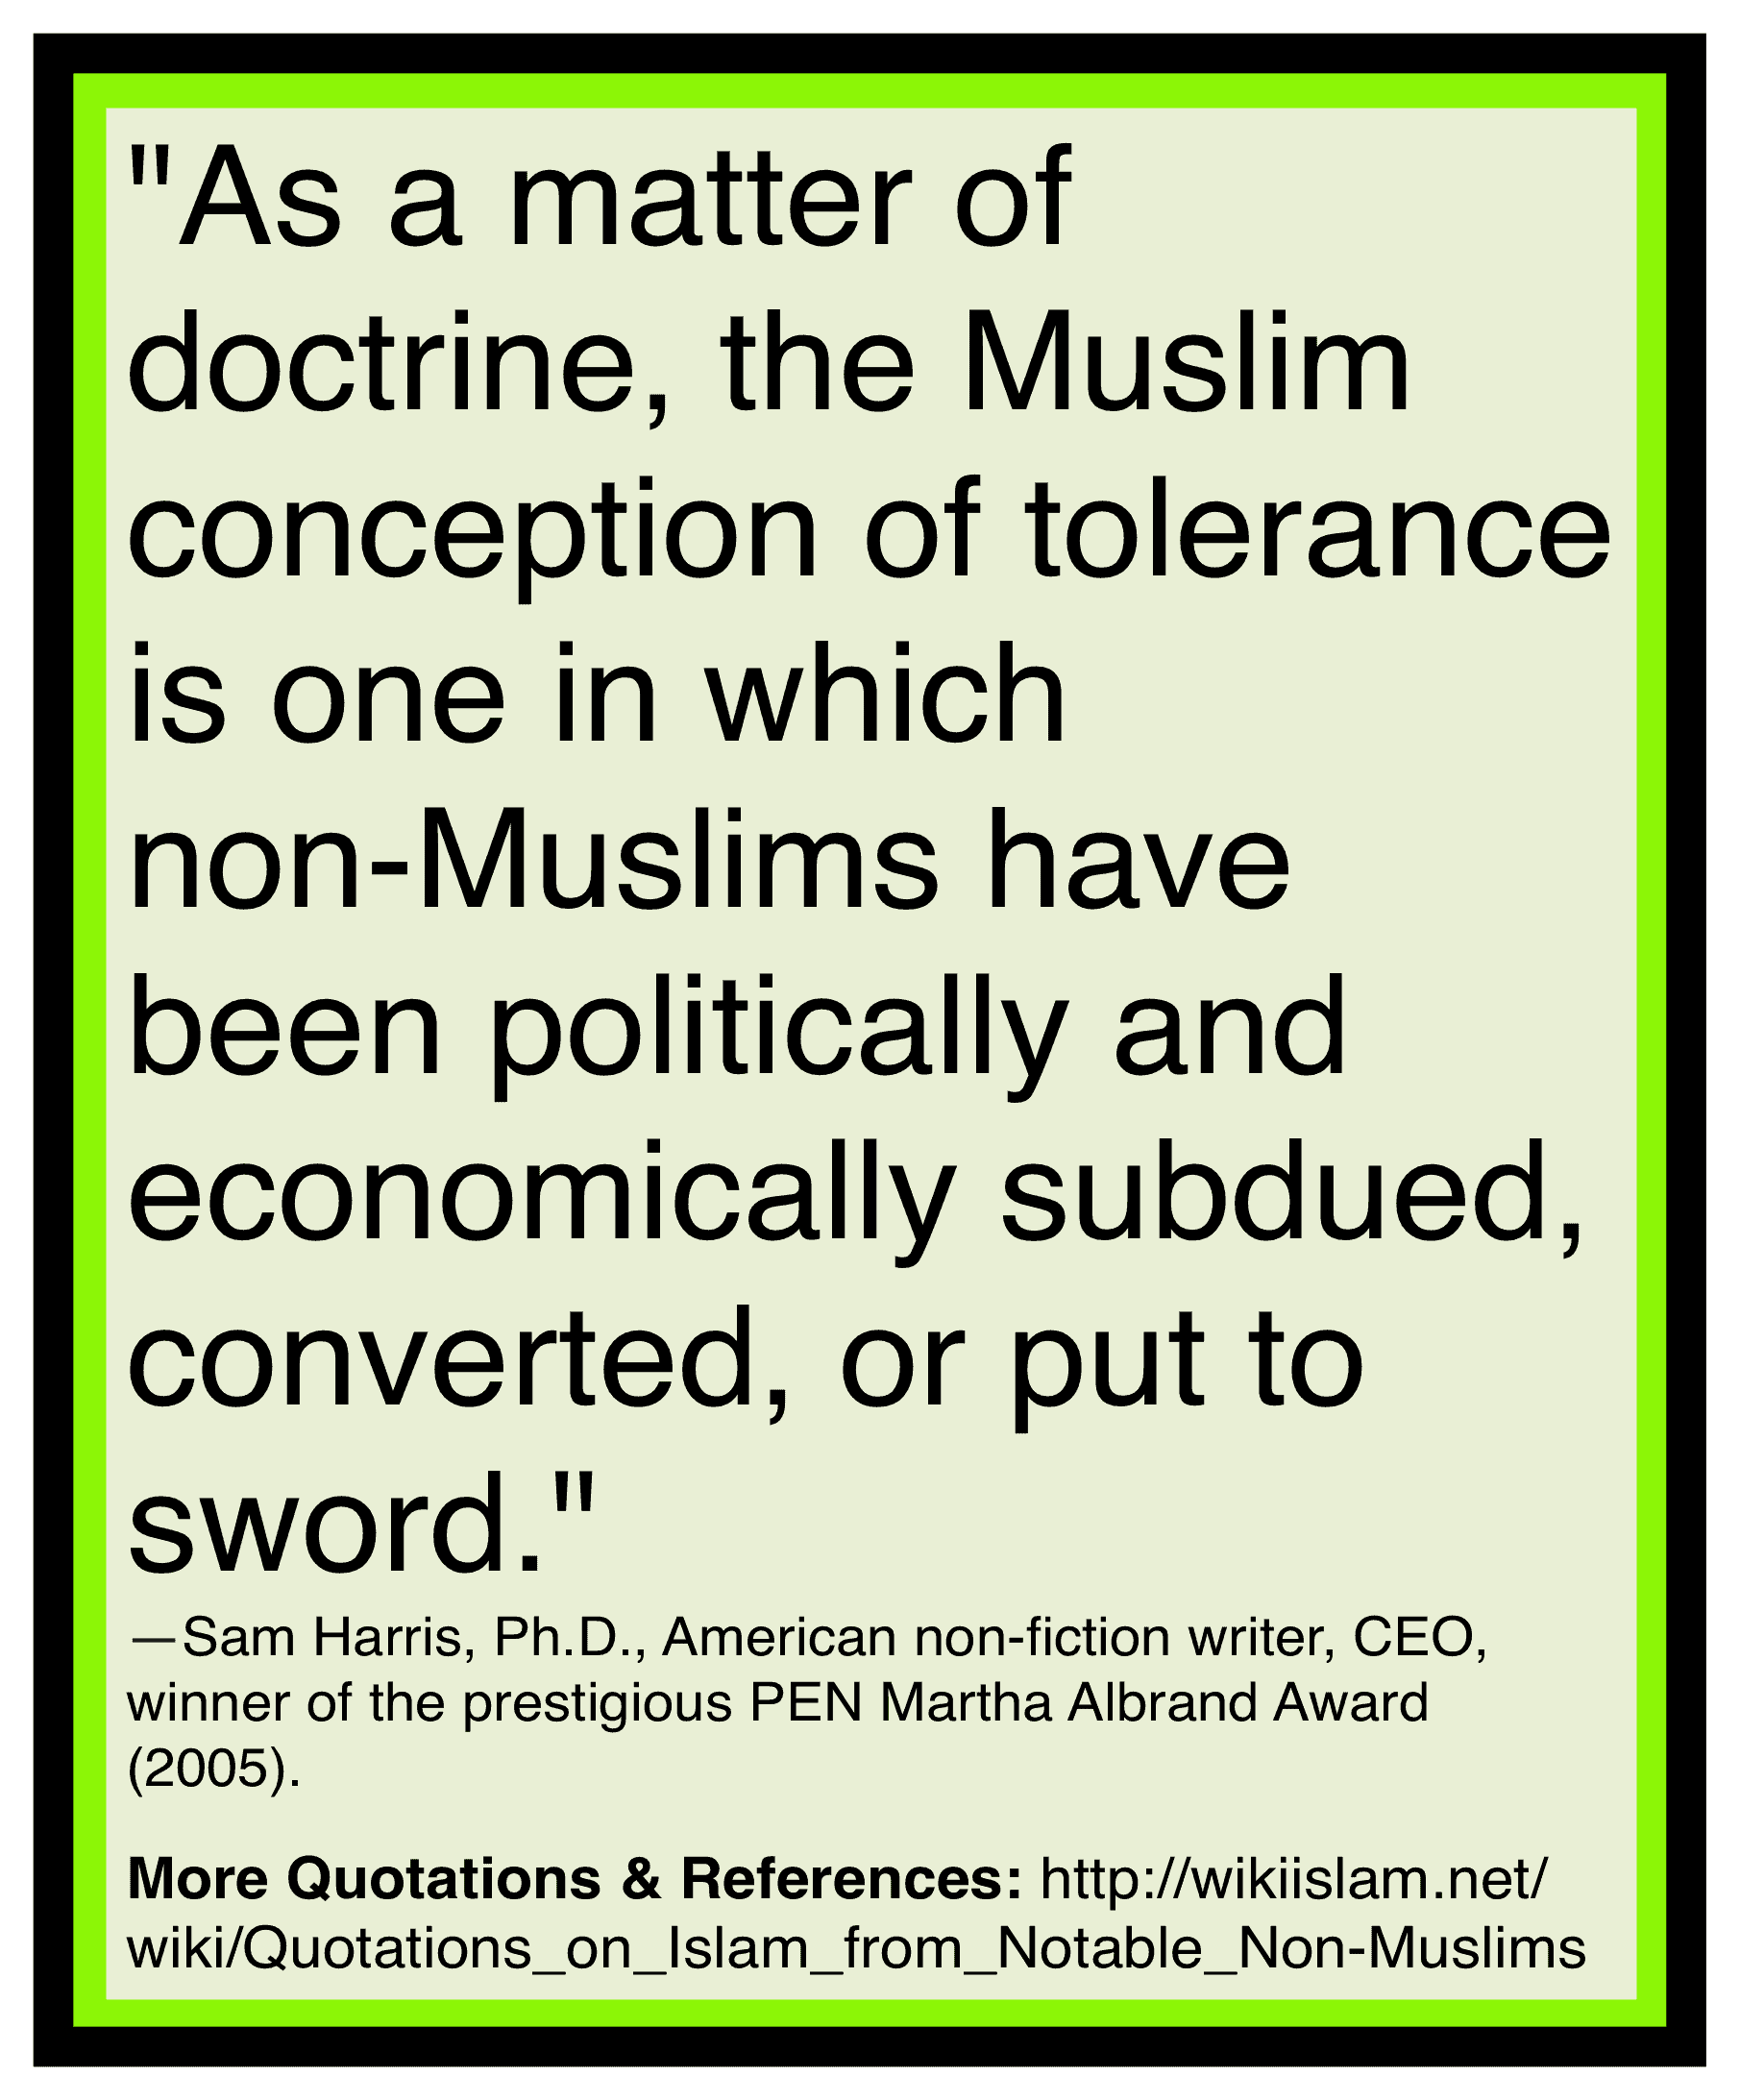 Islam is intolerant of others